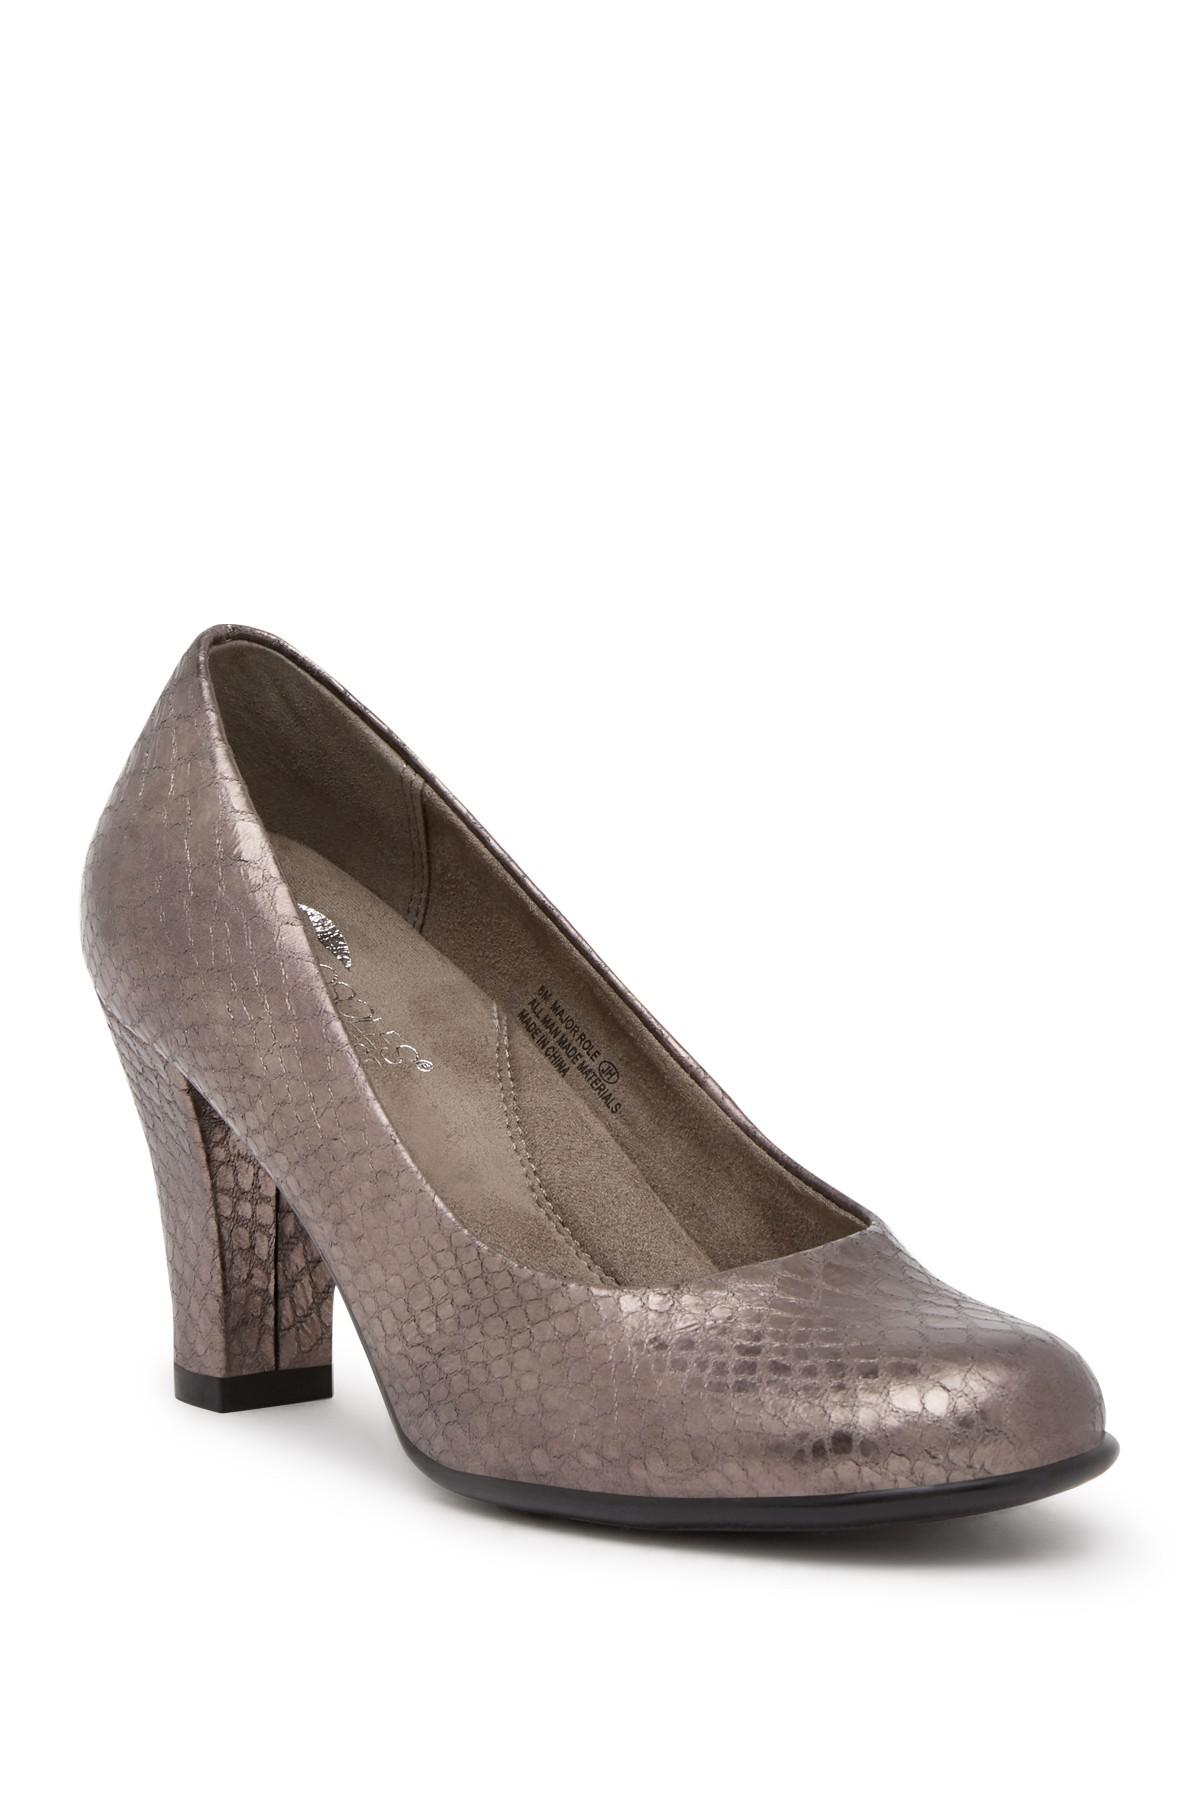 Aerosoles Major Role Snake Embossed Pump dqOt67sB0